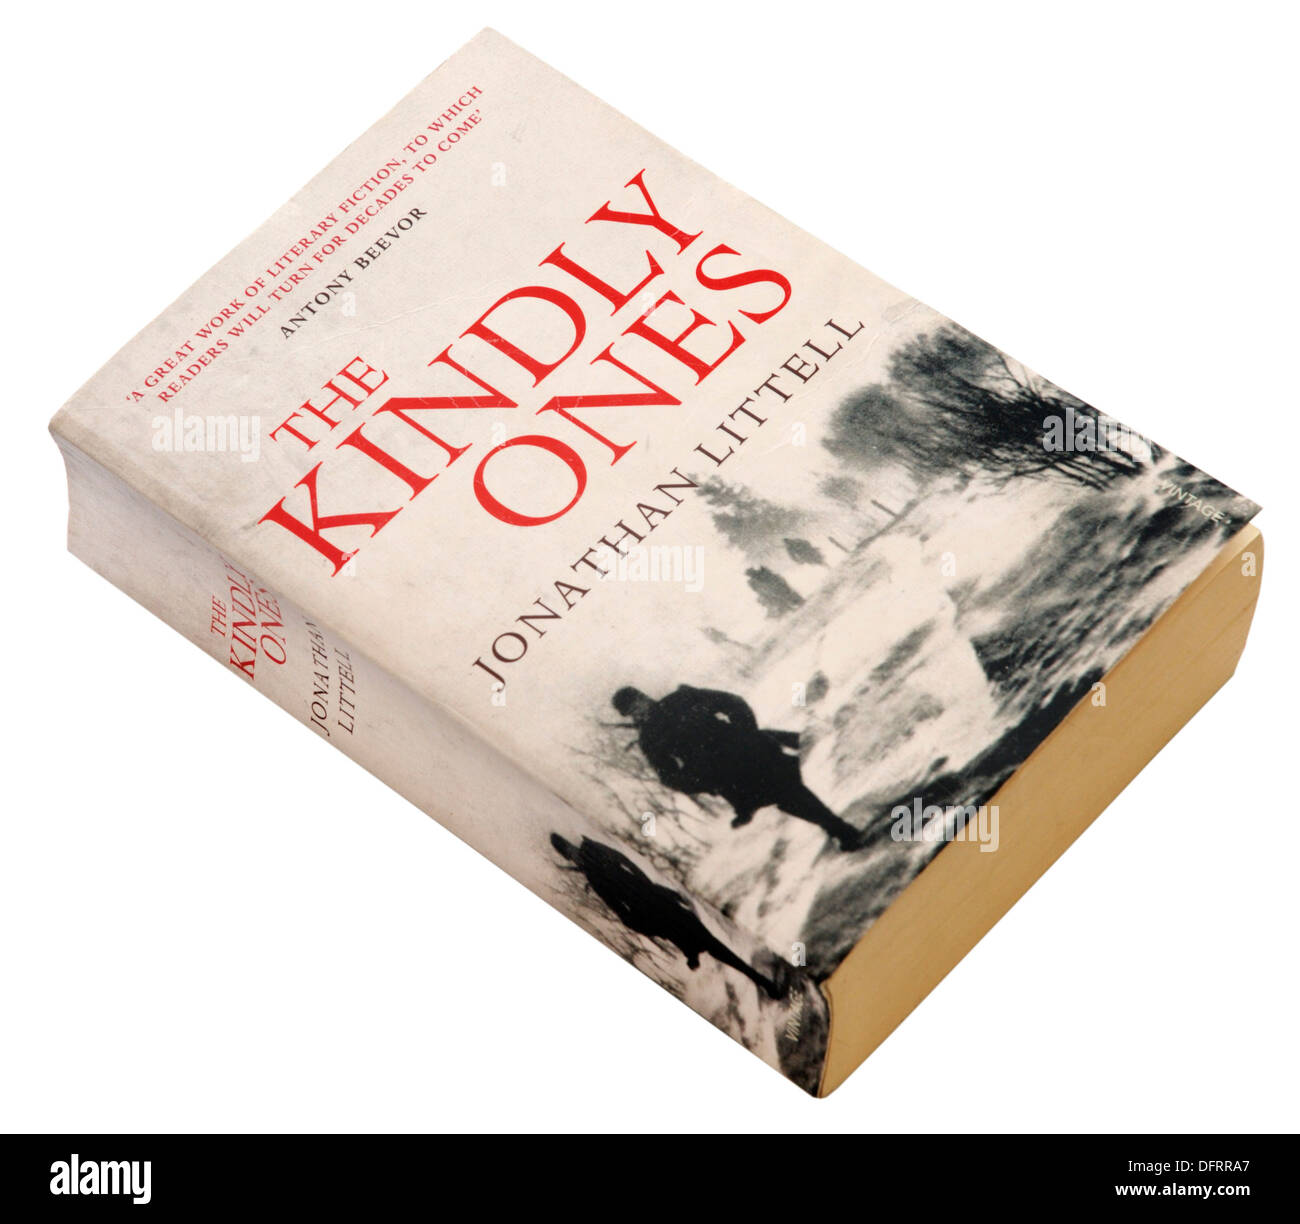 The Kindly Ones by Jonathan Littel - Stock Image